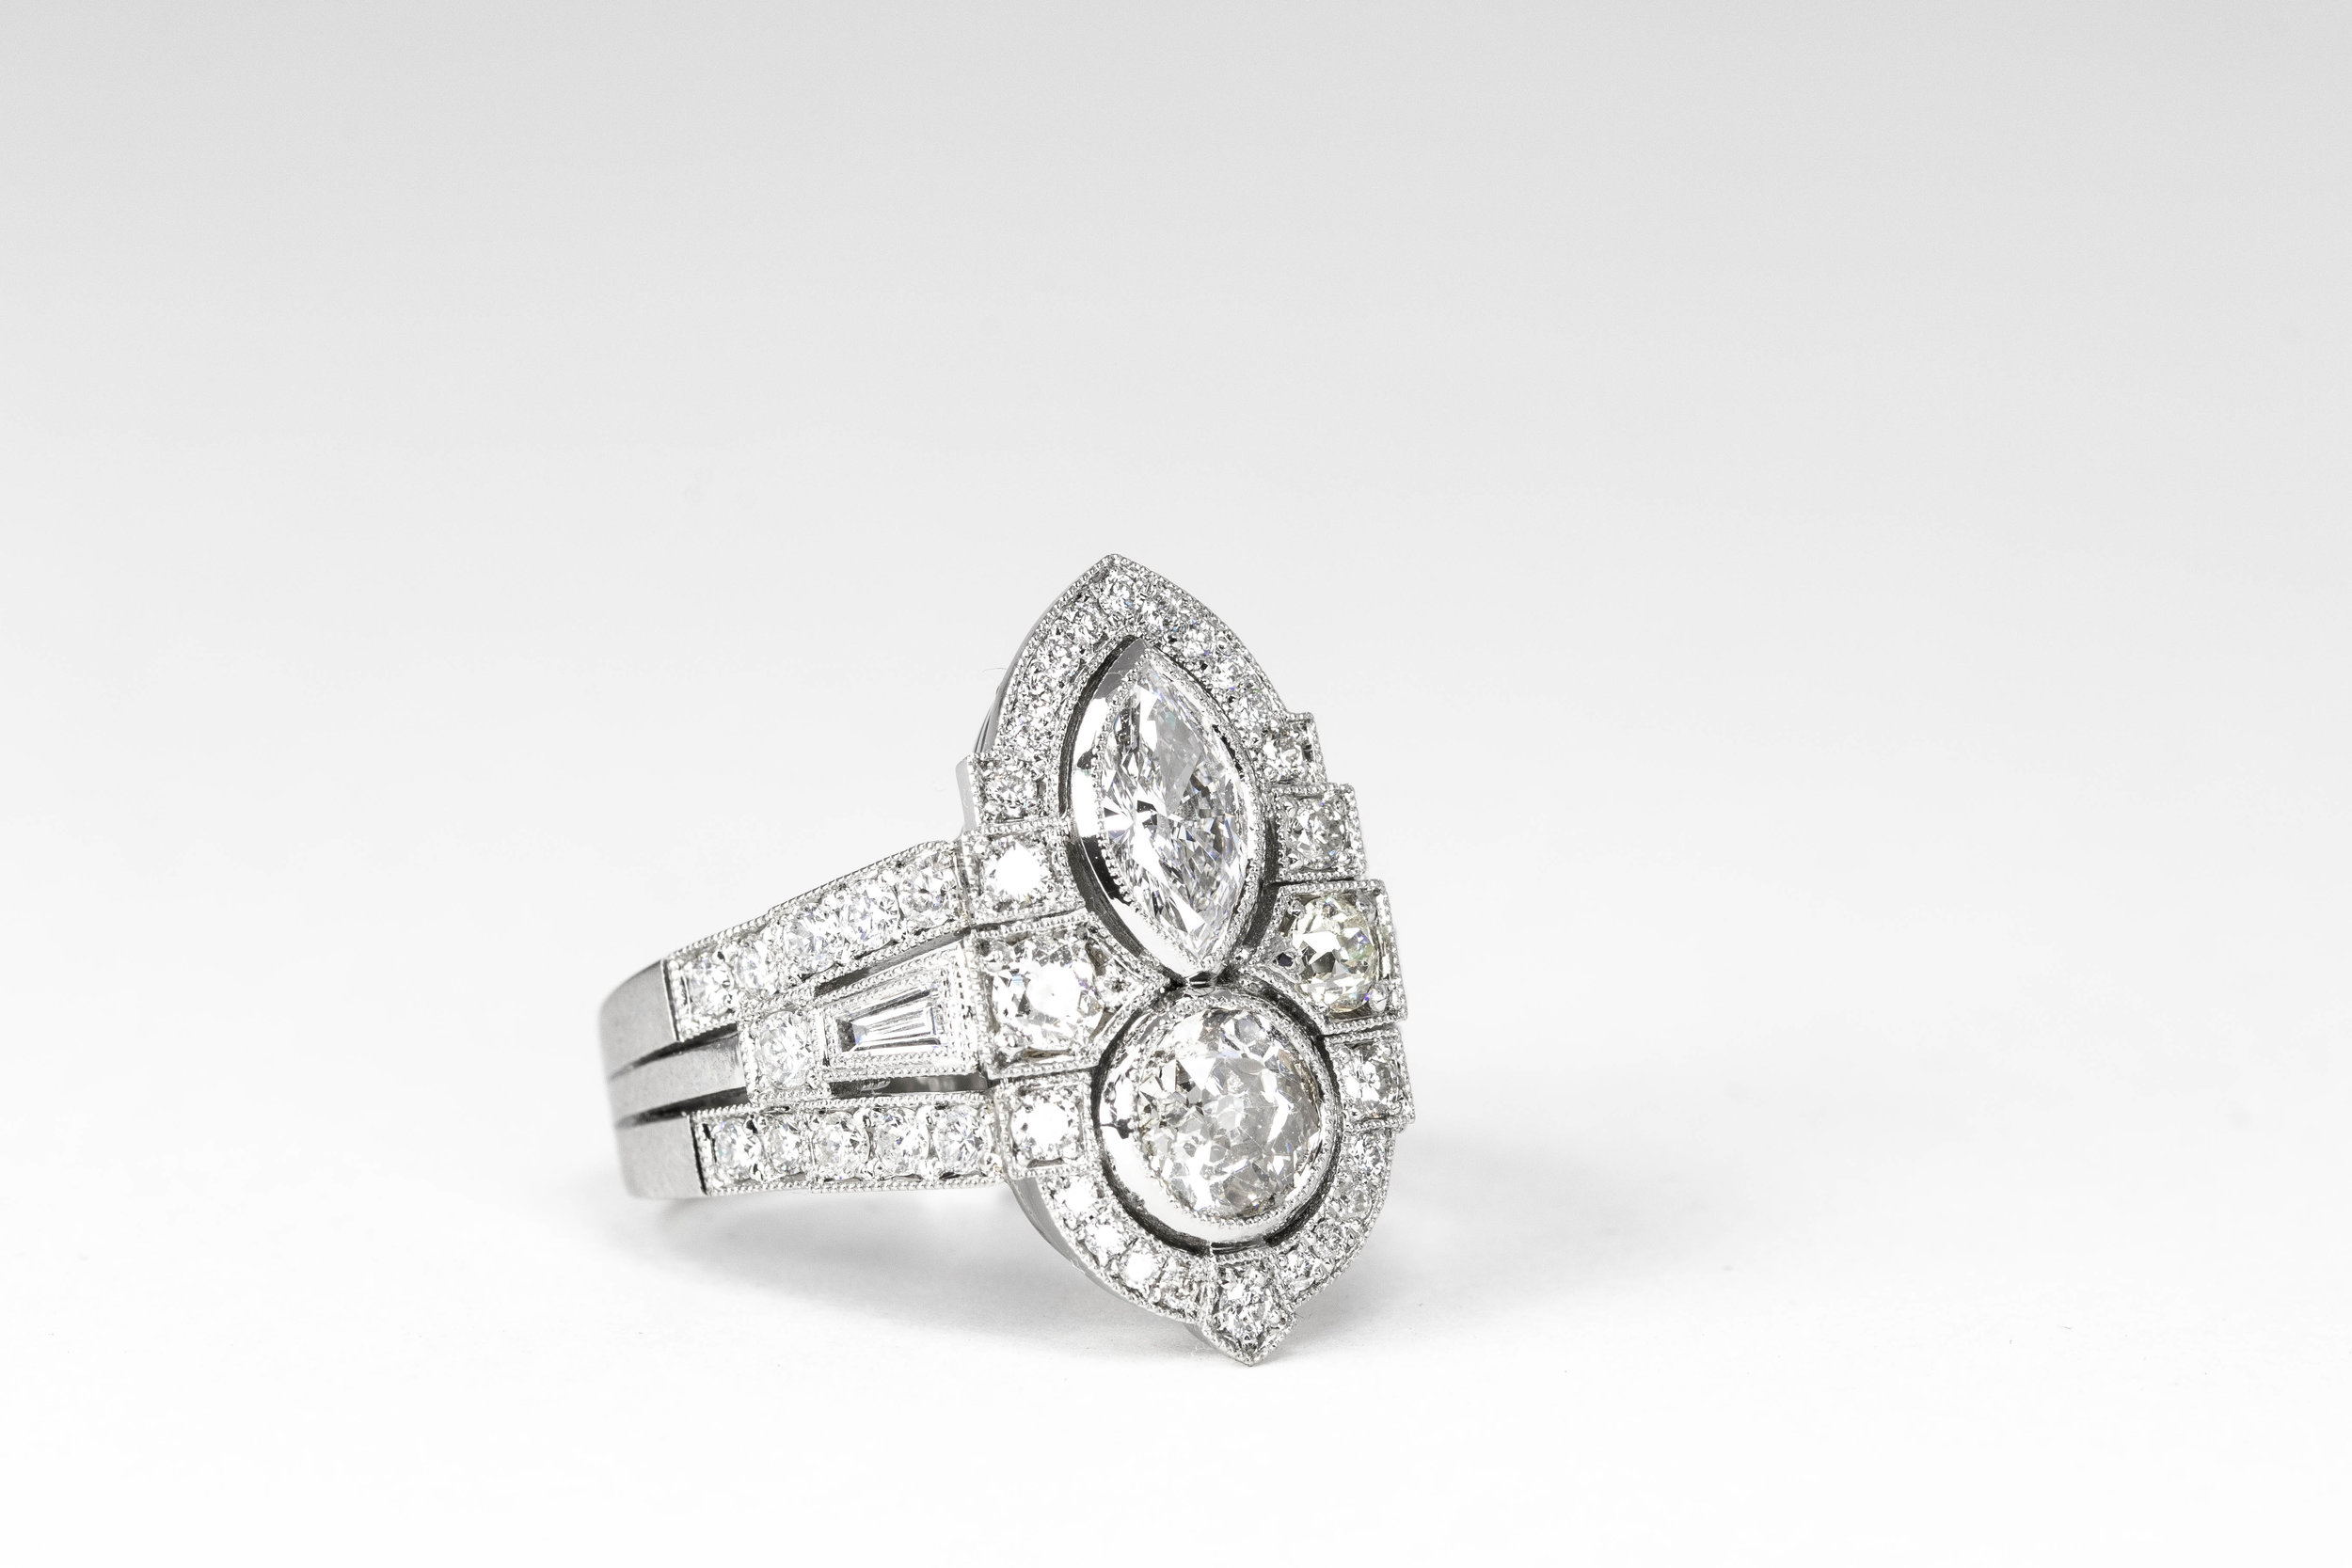 Copy of The finished platinum and diamond ring.